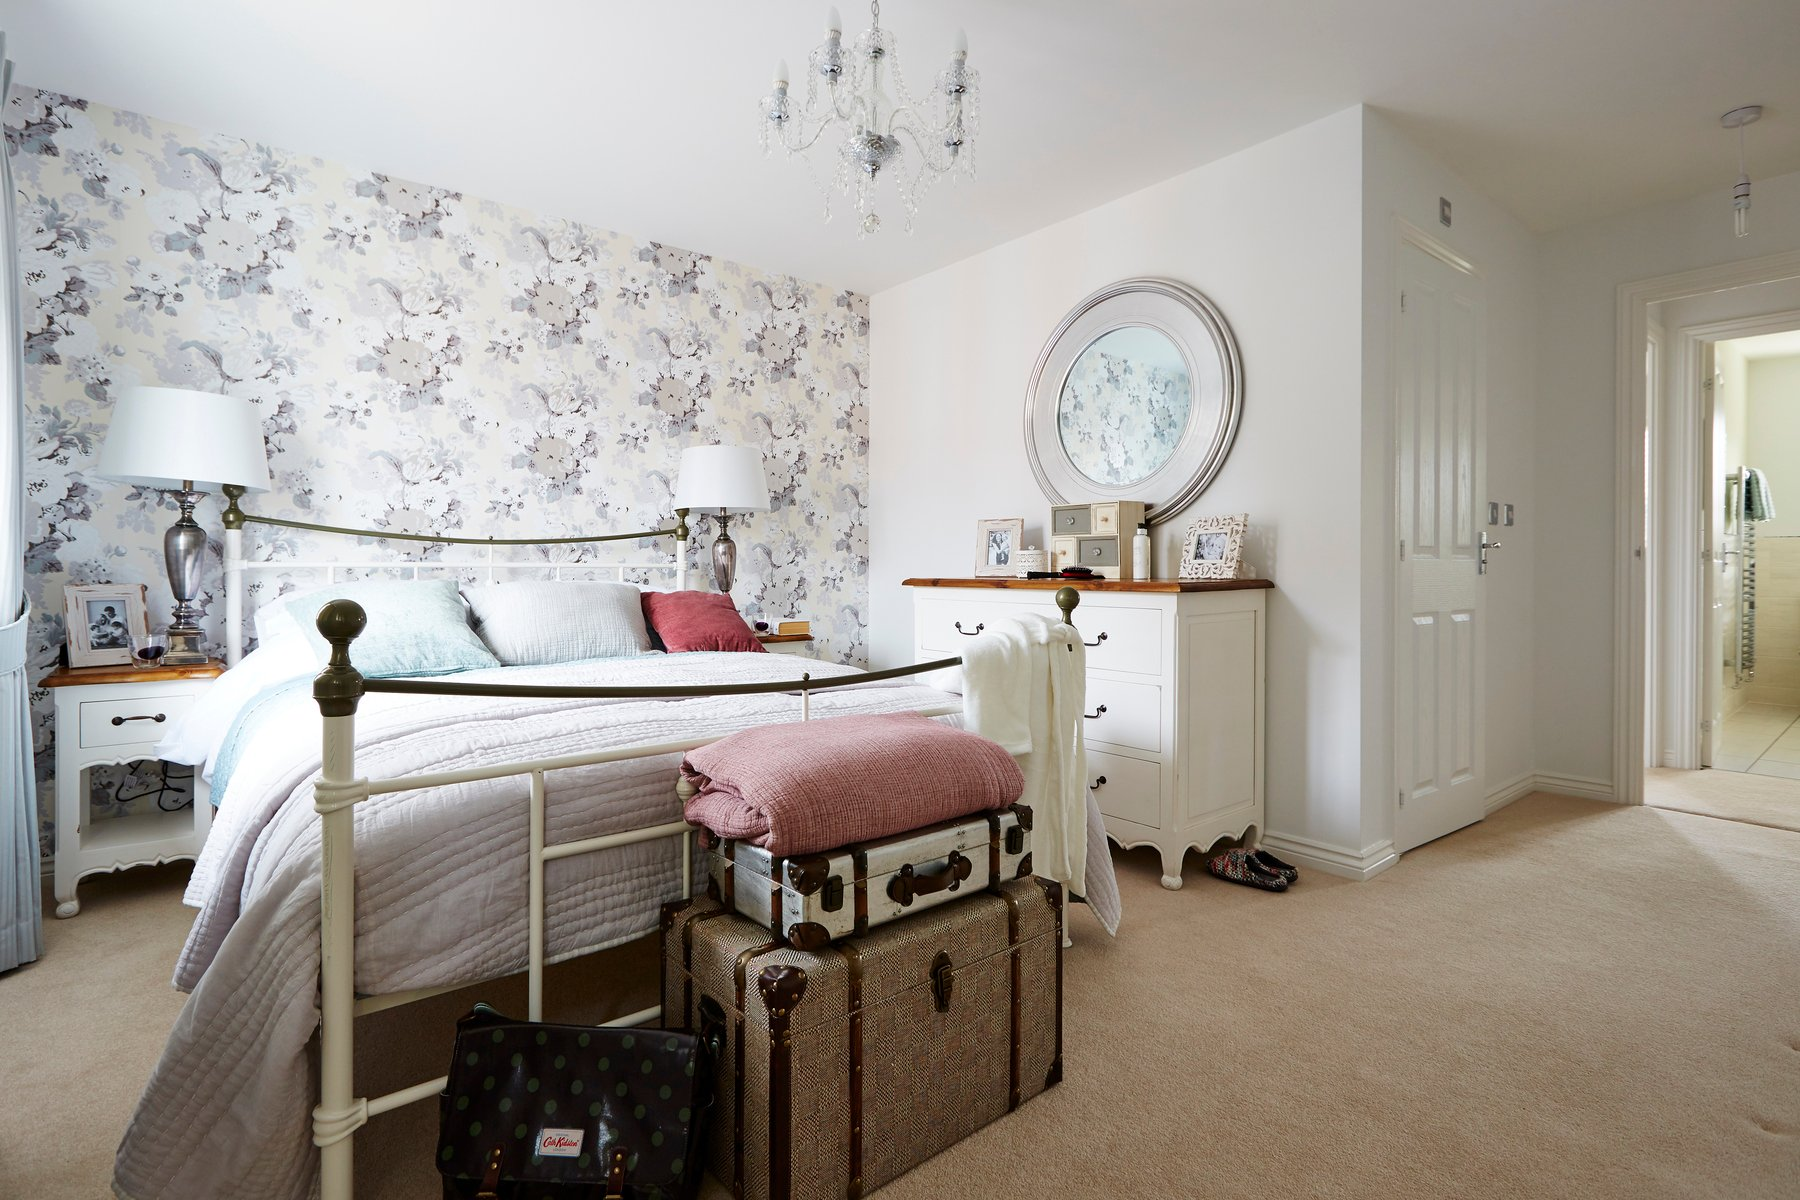 tw_westmids_nursery_meadow_barford_pa49_thornford_master_bedroom